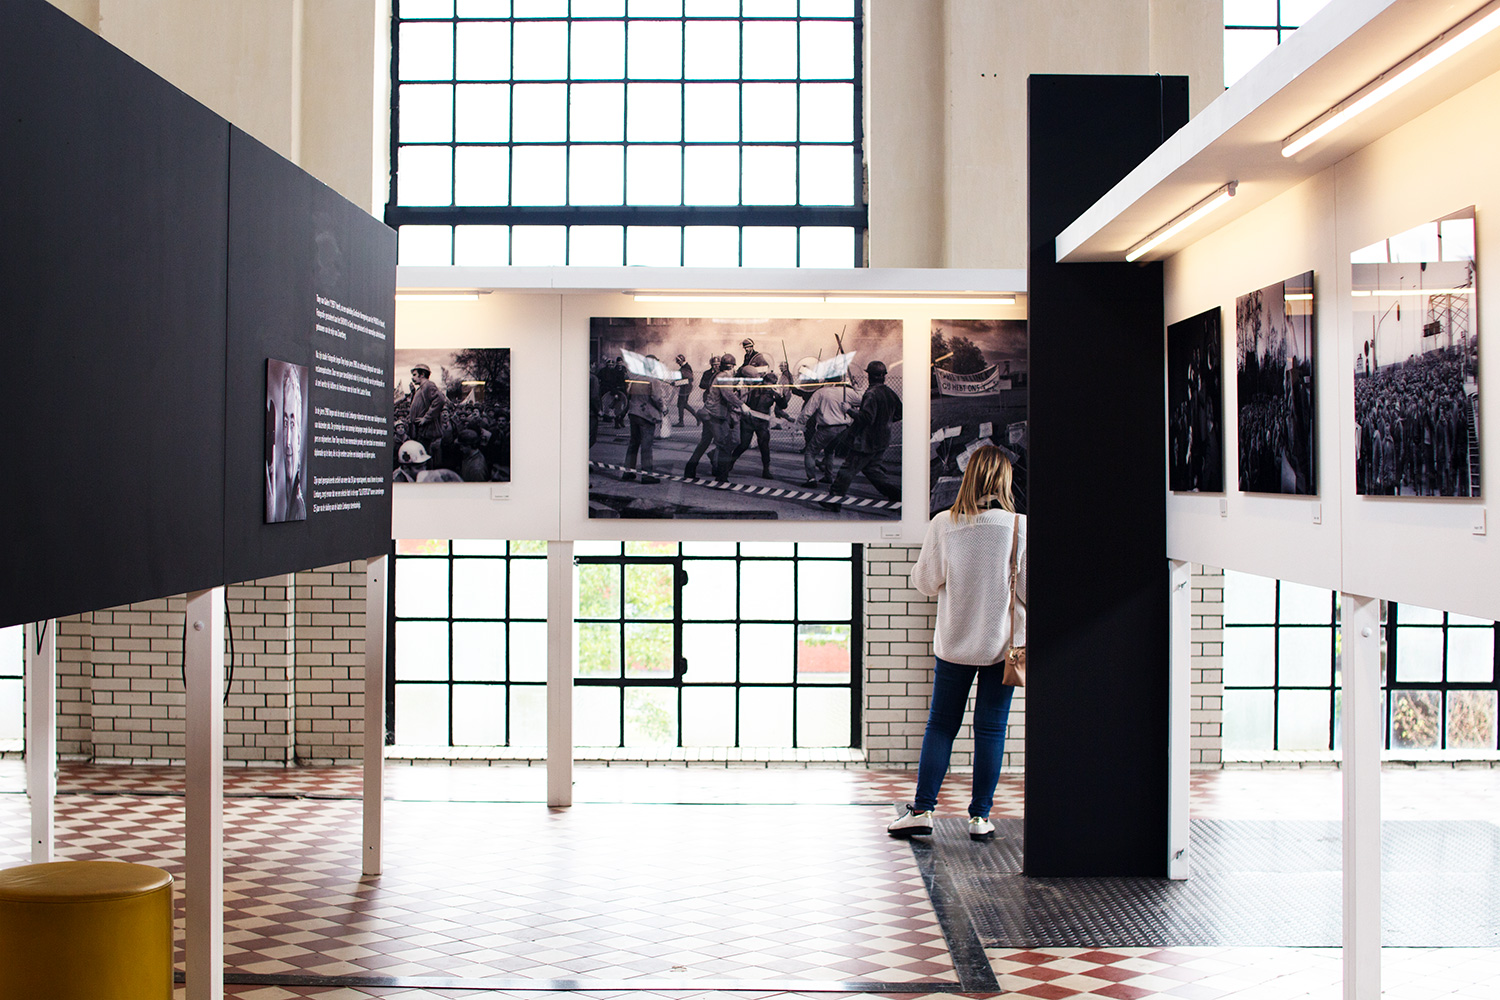 Person studying the exhibition pictures of coal miners protests at C-mine, Genk